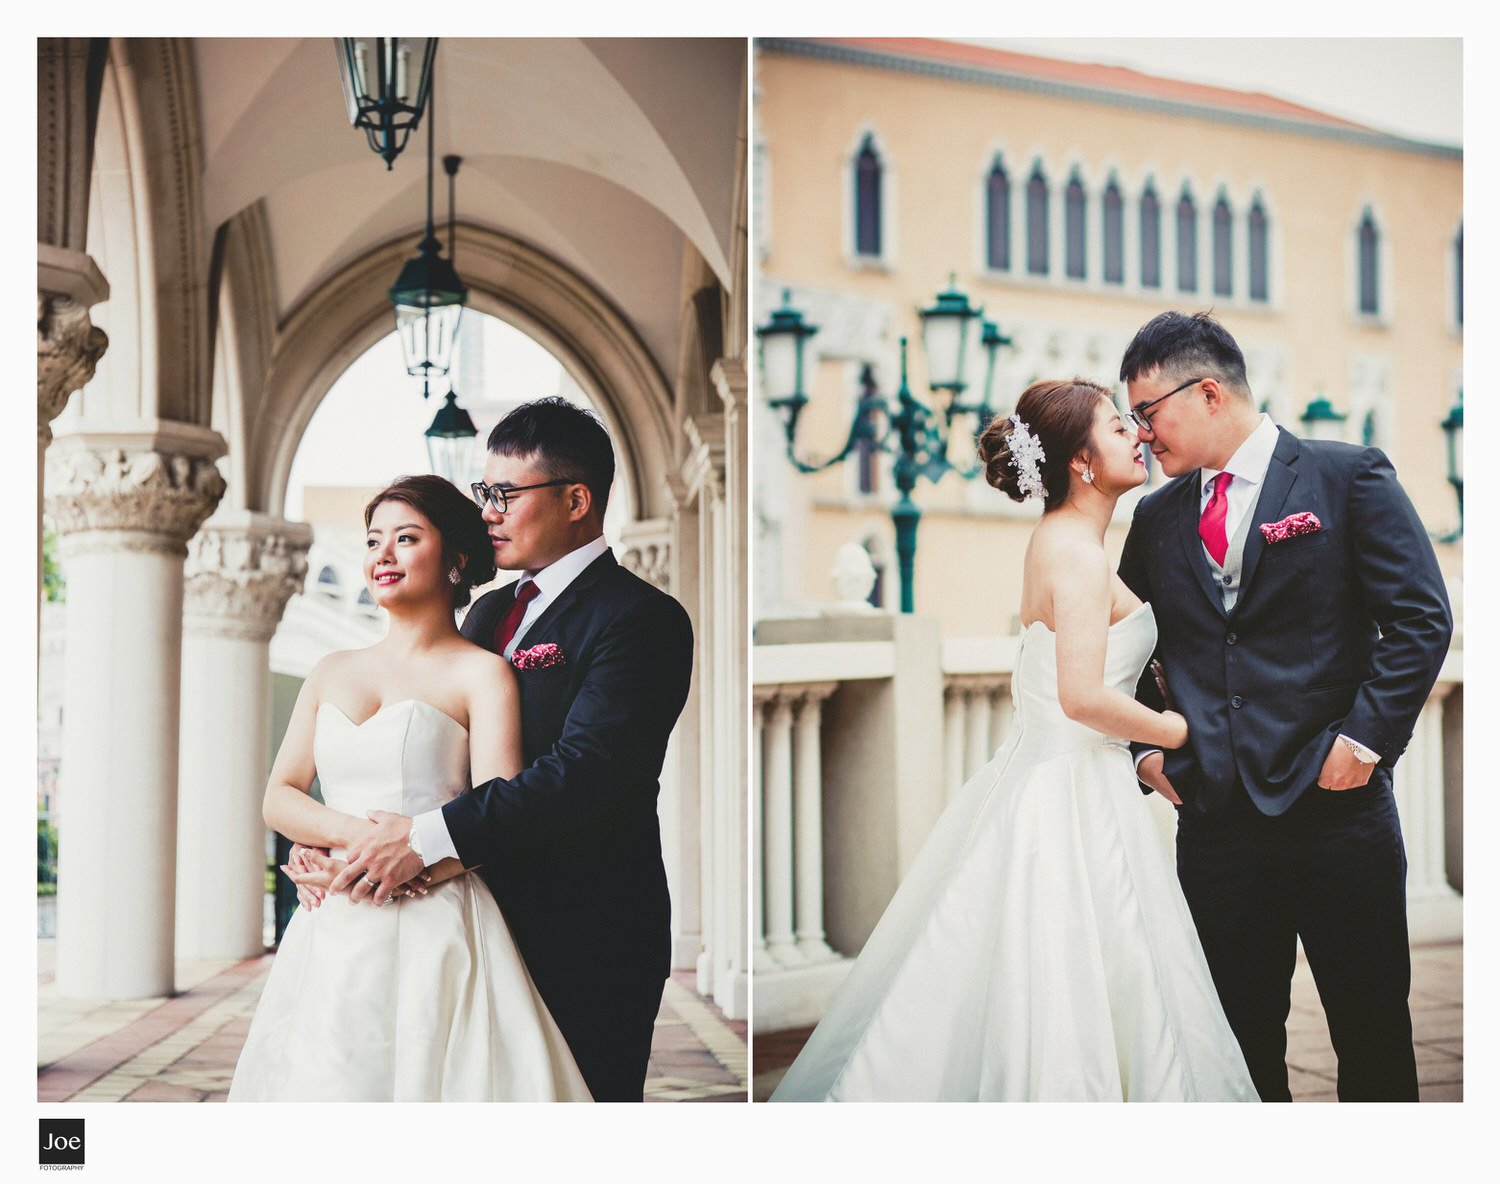 042-venetian-macau-pre-wedding-jie-min-joe-fotography.jpg